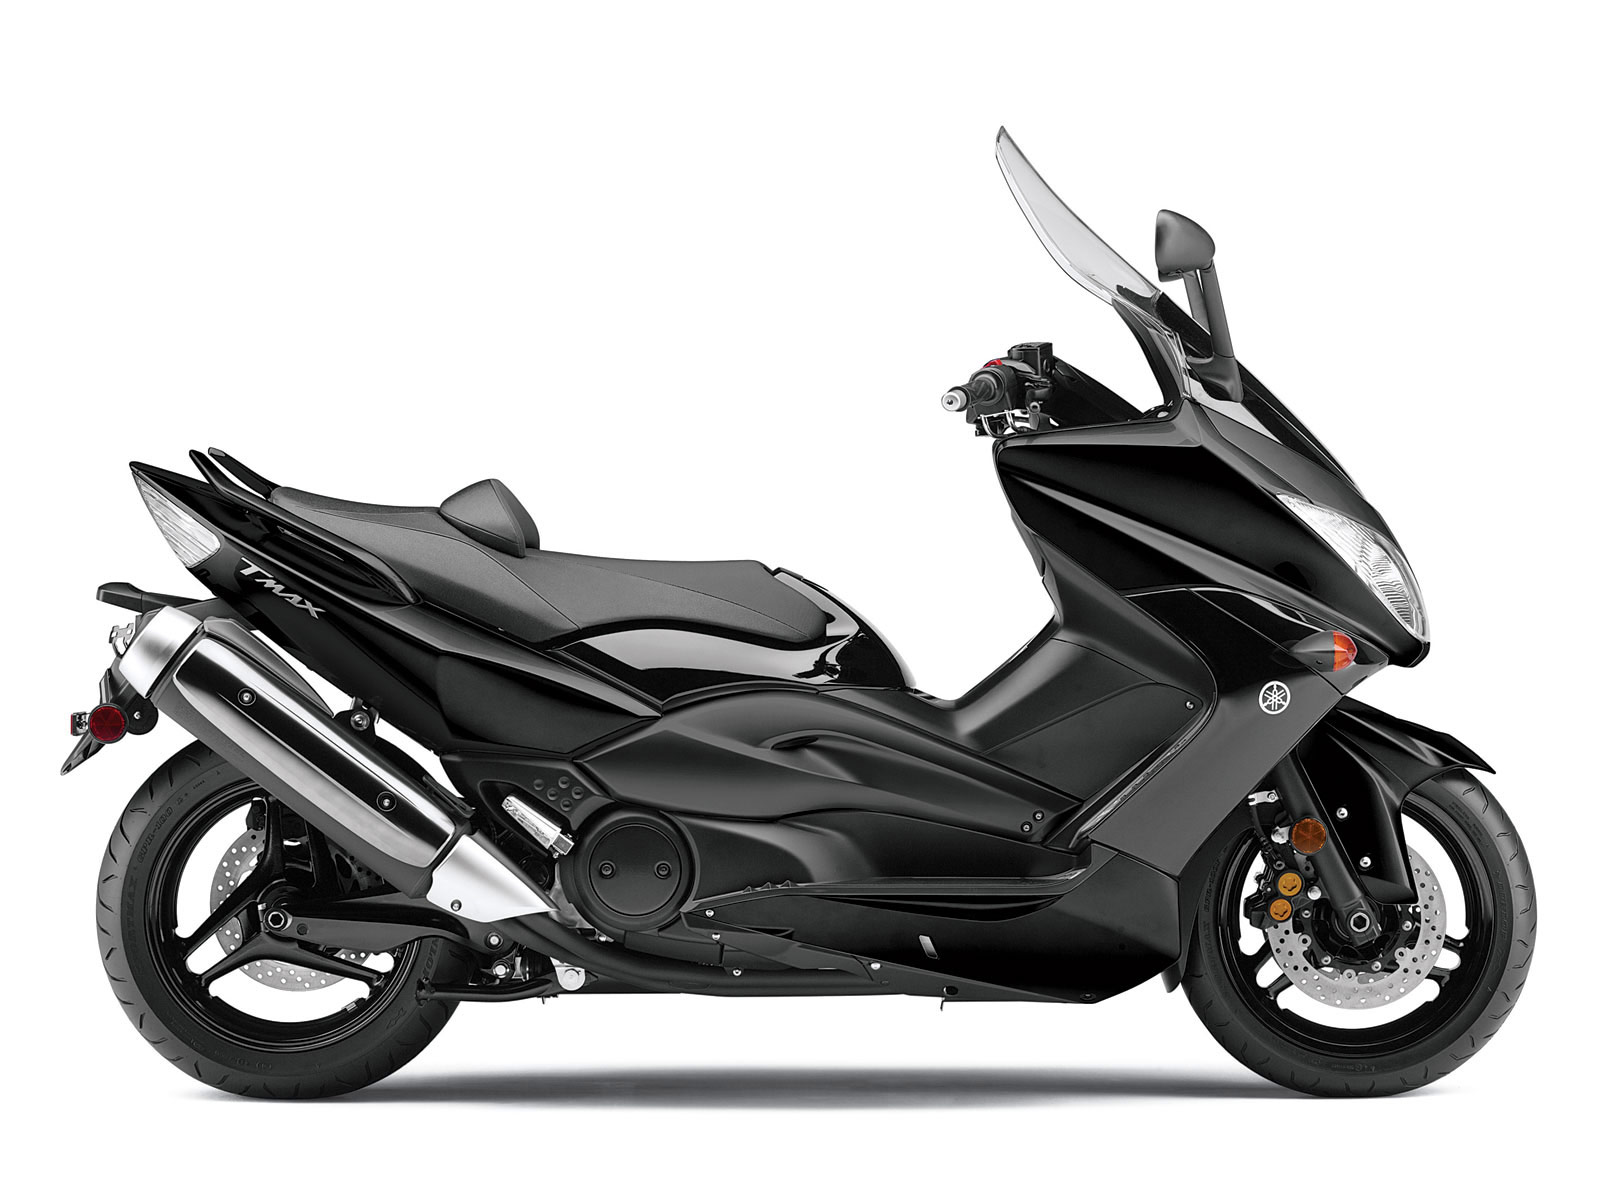 2011 Yamaha Tmax Scooter Pictures  Features  Specifications